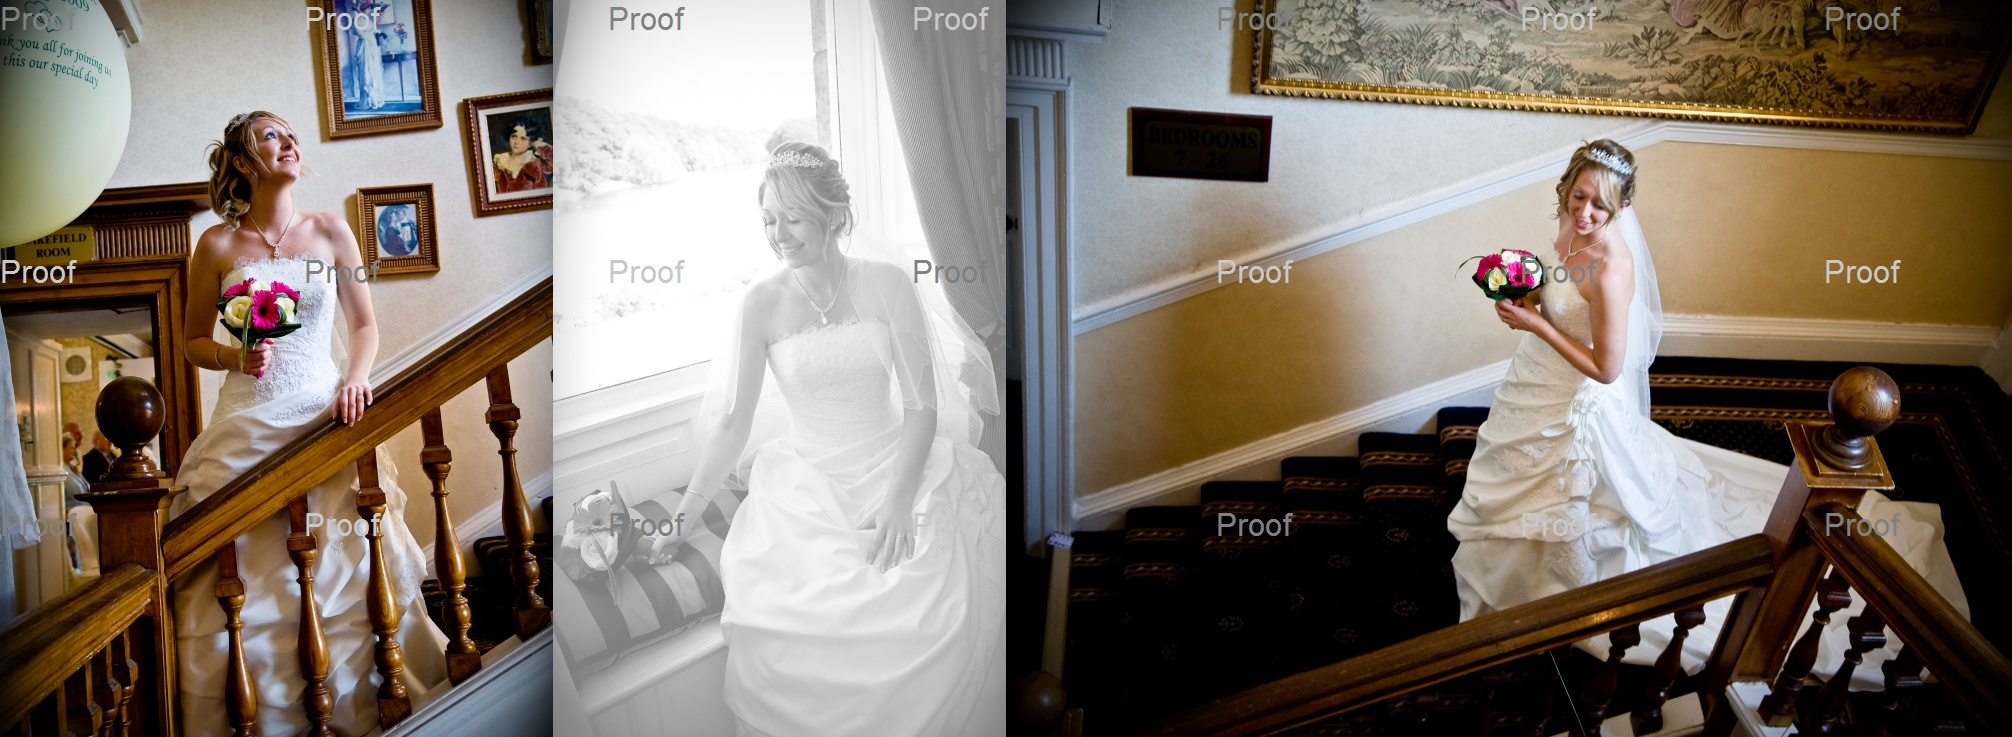 bridal wedding portraits on the stairs at Waterton Park Hotel